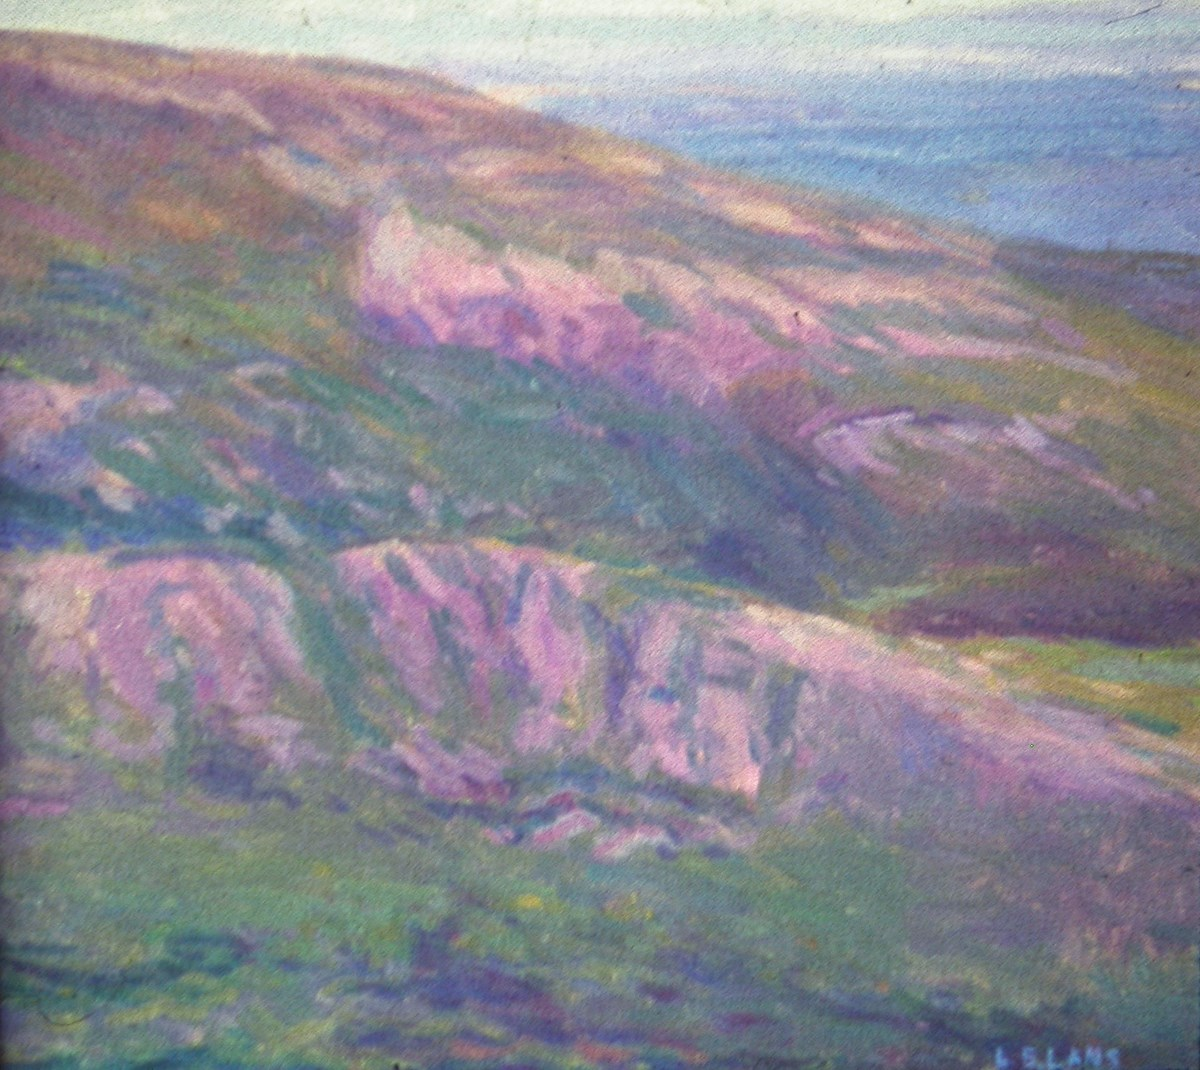 Oil Painting of the Bubbles. Mostly pinks, Blues, and Greens used. Image is of a landscape looking towards the ocean with sloping land in the foreground.